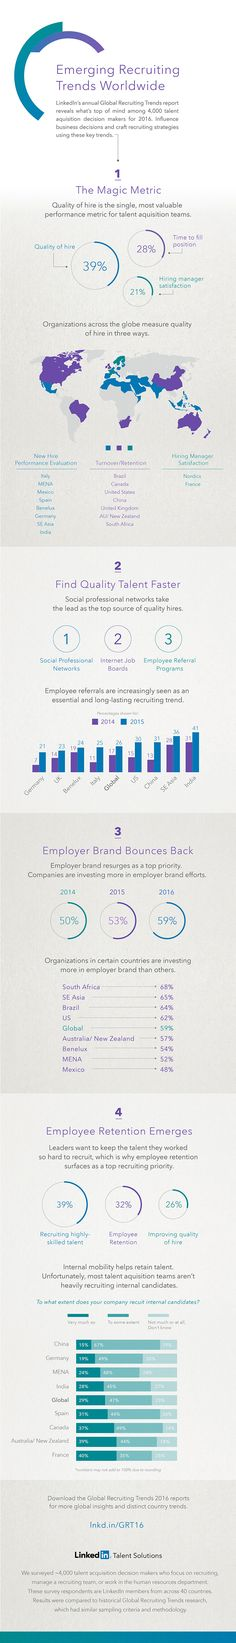 global recruiting trends 2016